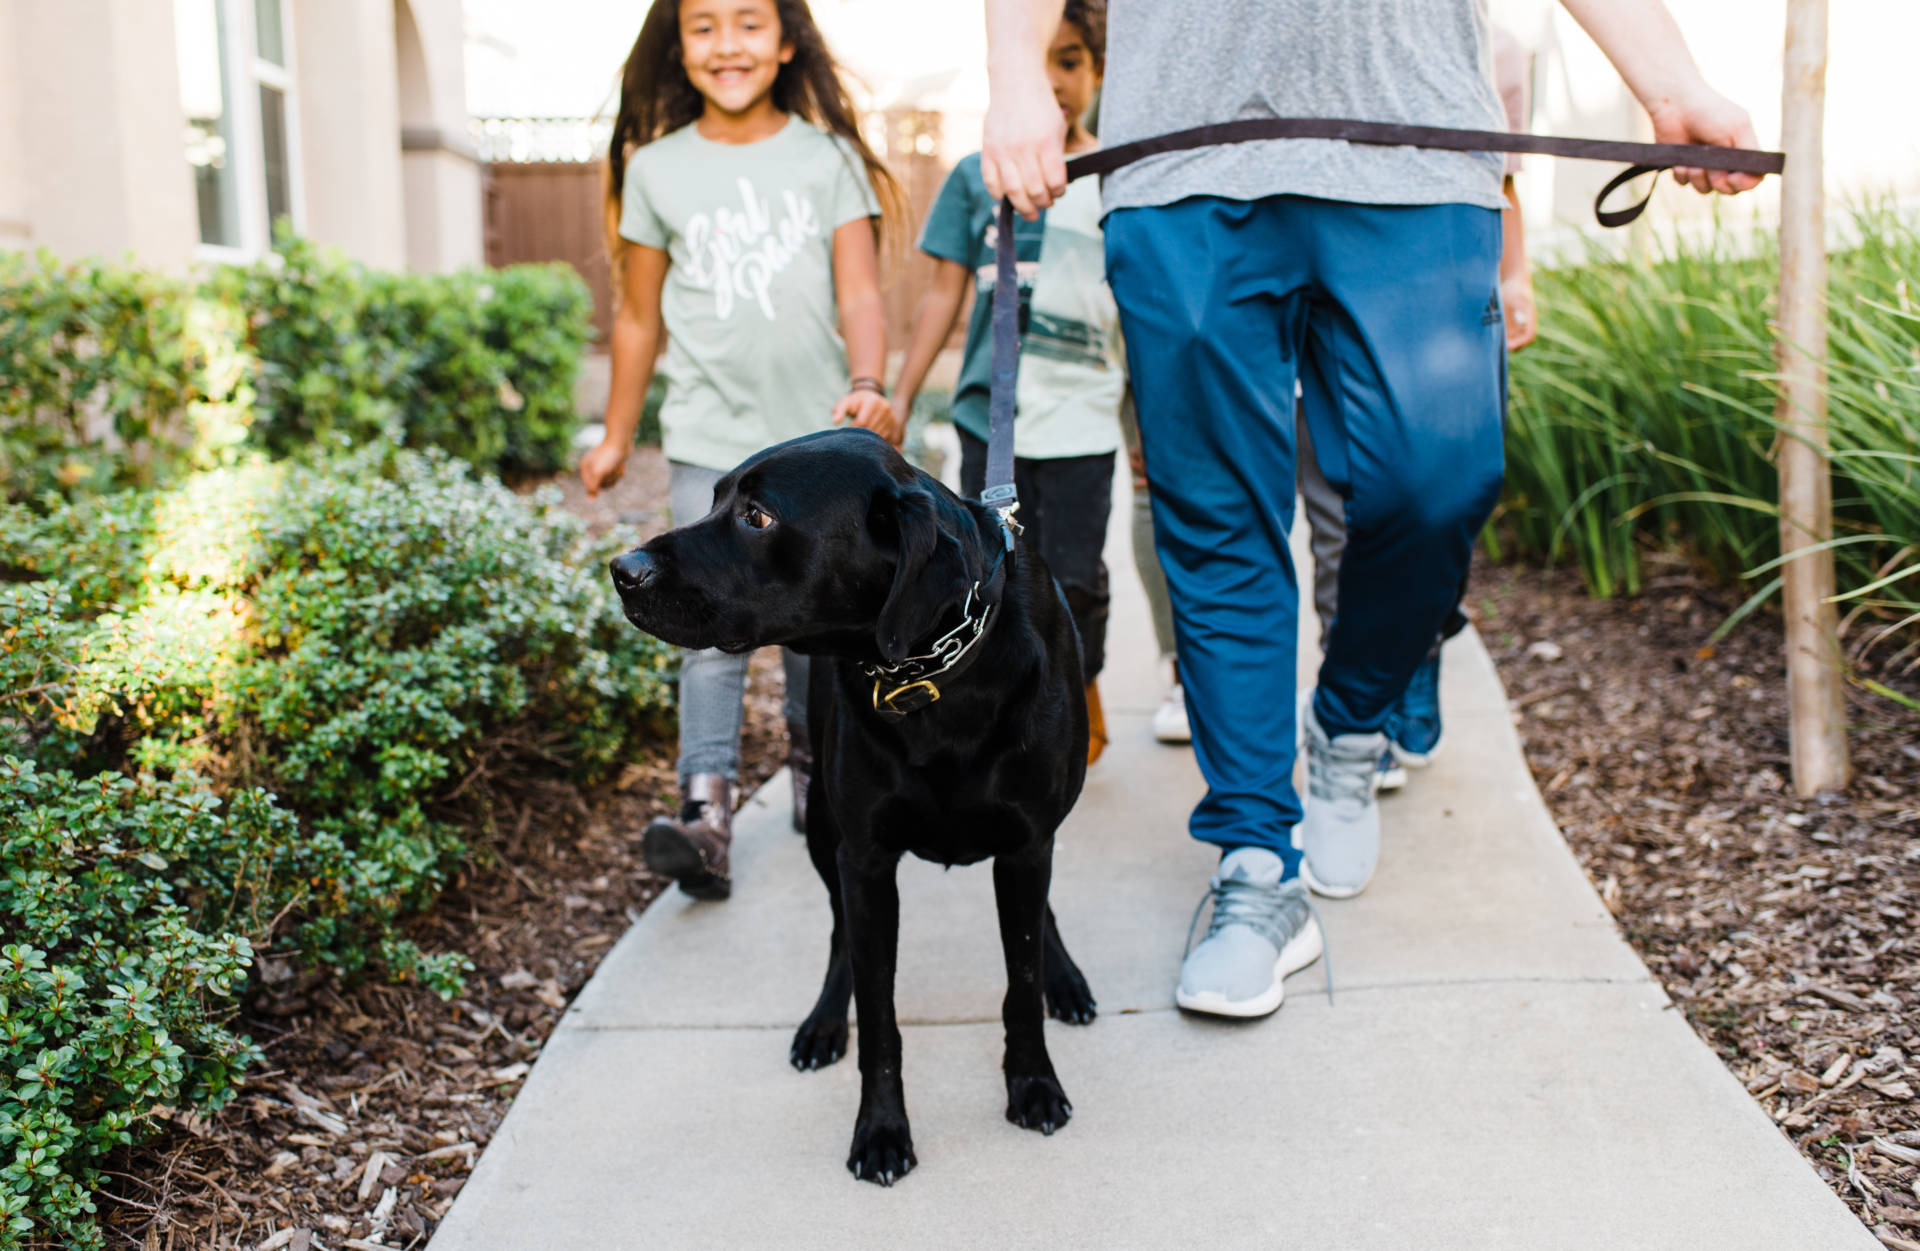 Ruthie Ridley Blog Freshpet provides, real food to pets. From the care they take to source ingredients, to the moment it reaches our homes, Freshpet's integrity, transparency and social responsibility are second to none. SO glad we were introduced to them!